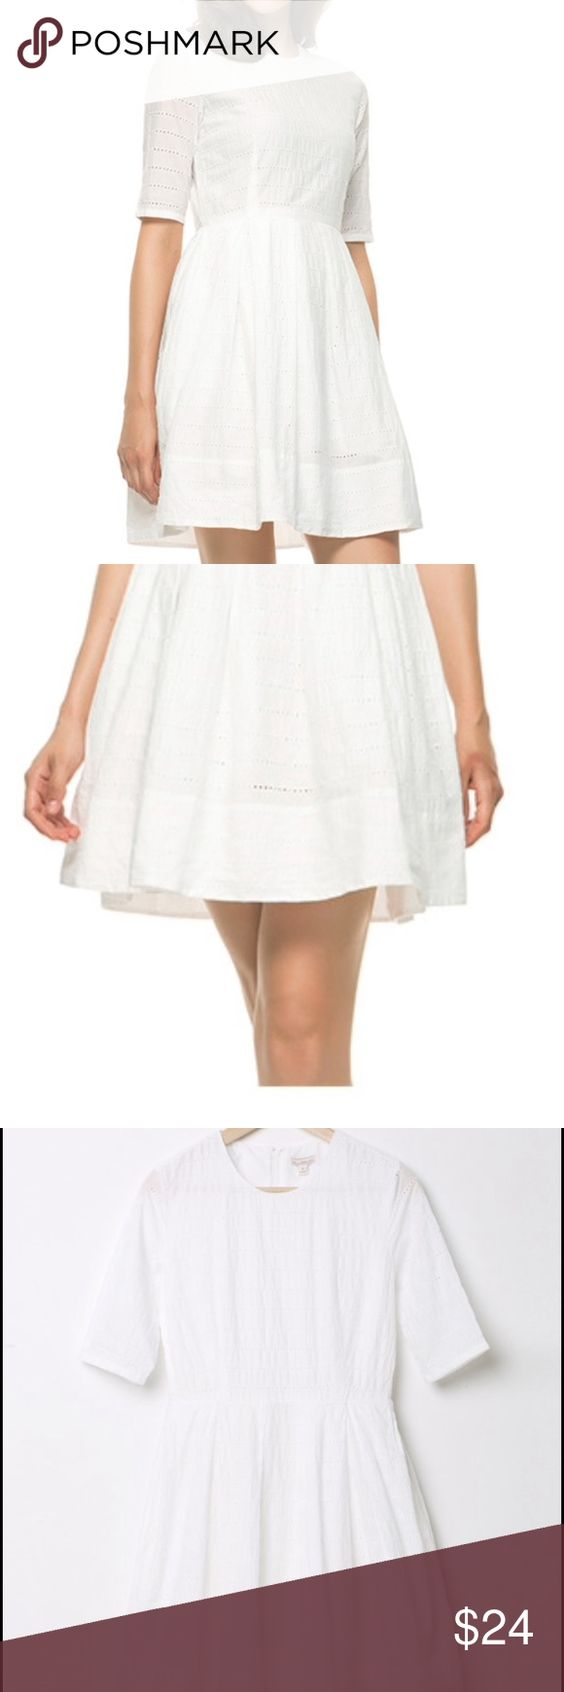 Adorable White Eyelet Dress White eyelet dress right on trend with a cut that looks great on everyone. Only worn once for a summer white dinner. 100% cotton lined with a cotton slip so that nothing shows through. Gap Dresses Midi